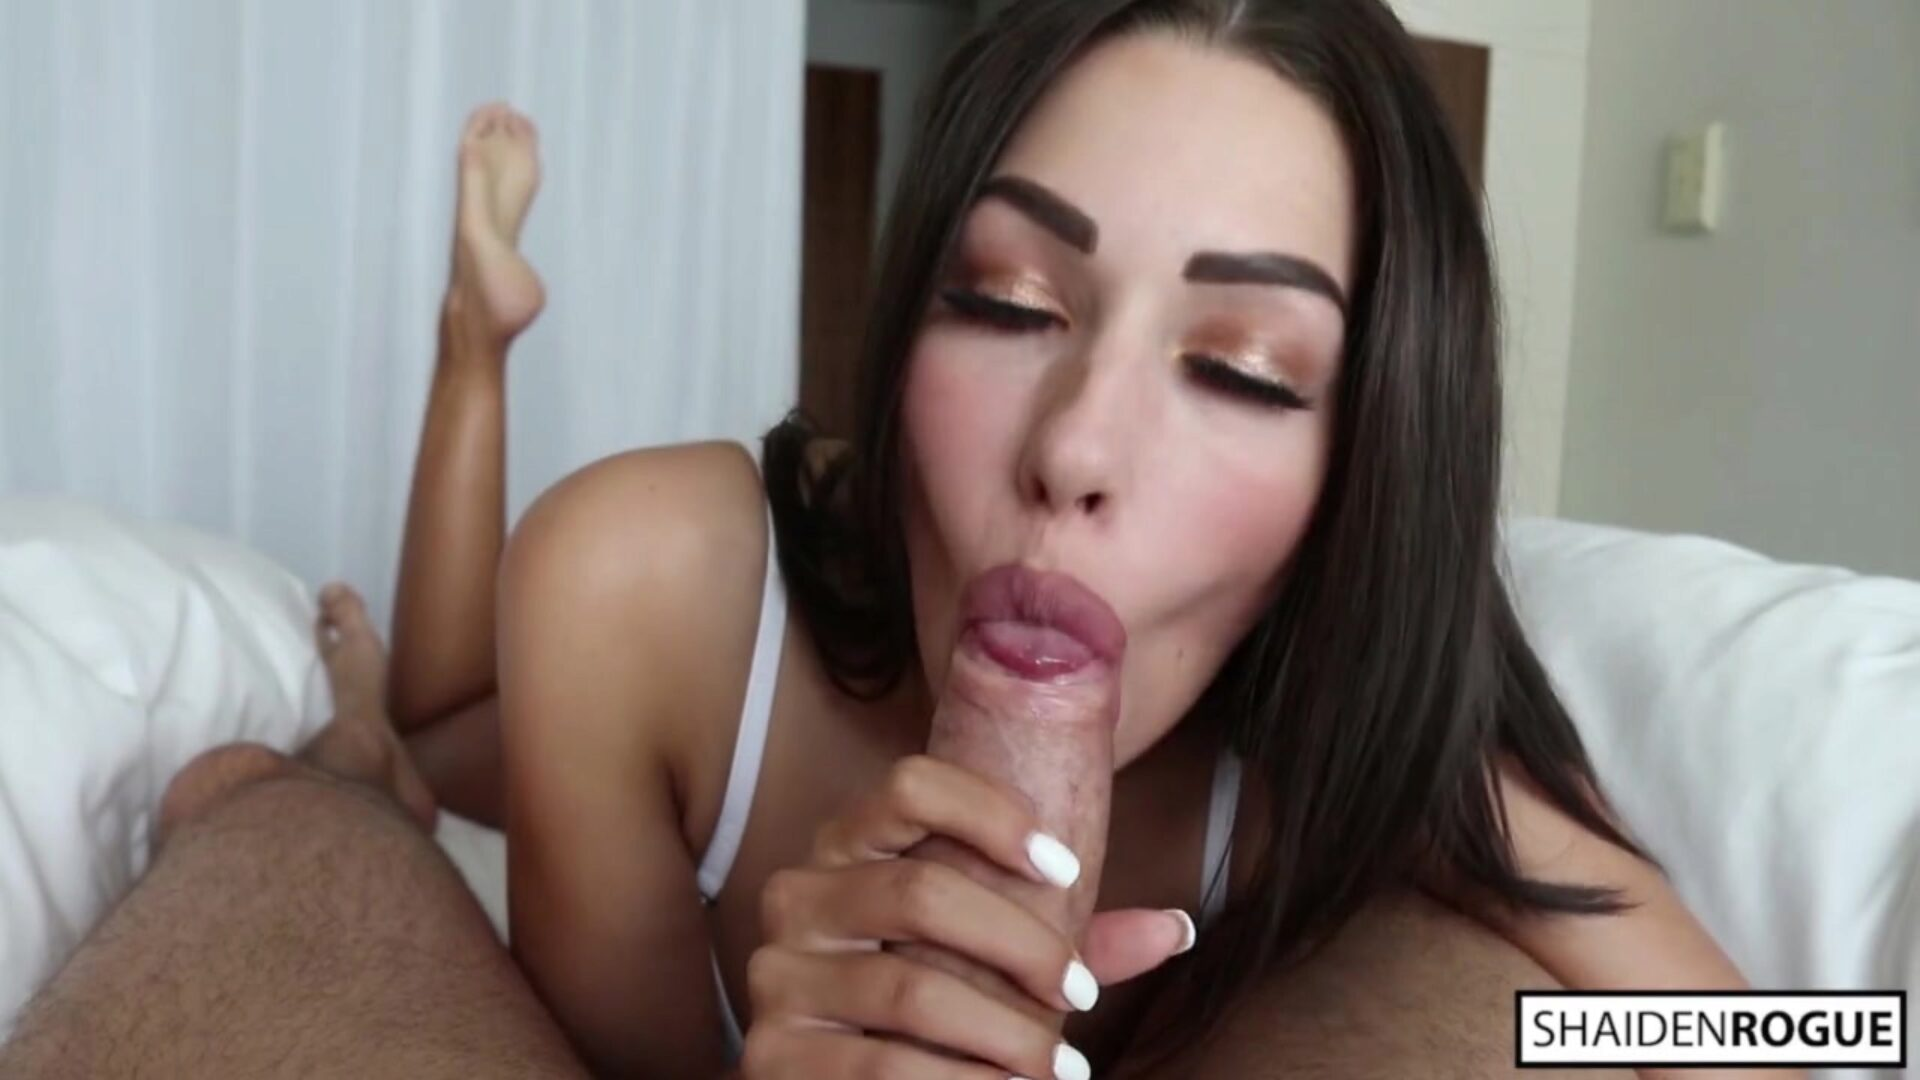 Intimate Sensual Blowjob - Girlfriend Experience Part I - Shaiden Rogue